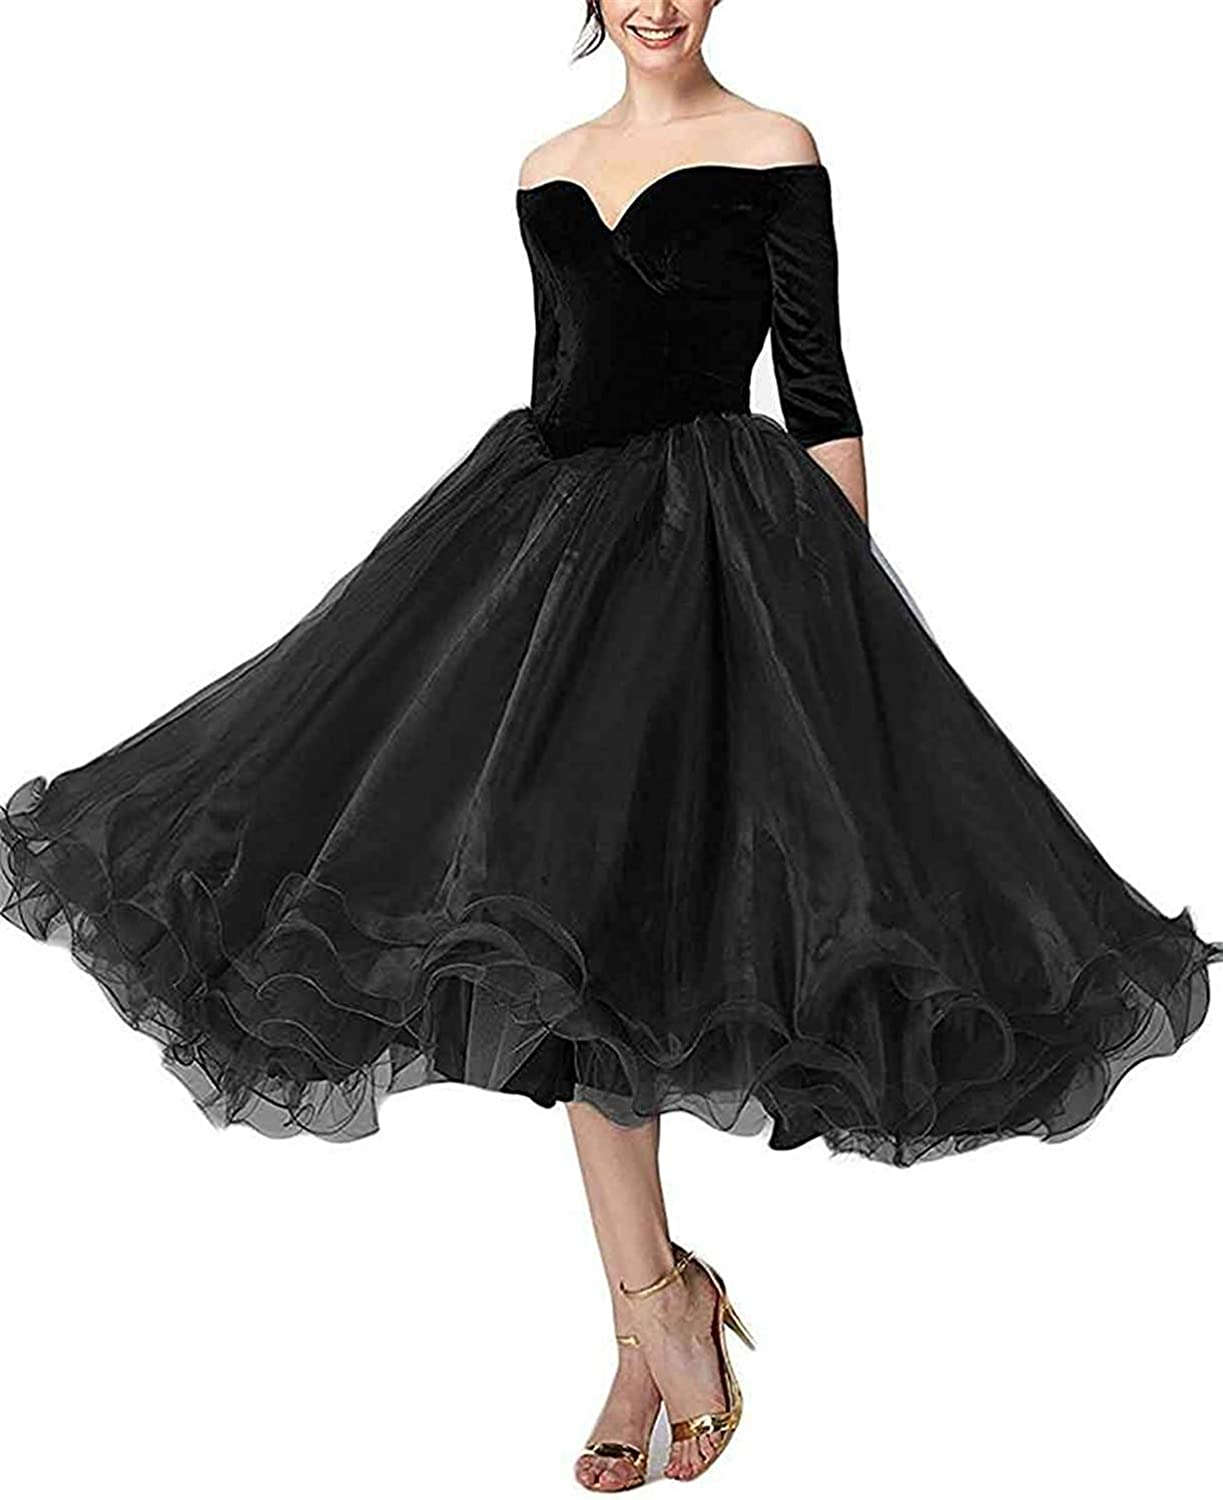 Sulidi Womens Half Sleeves Off Shoulder Prom Dresses 2019 Tea Length Formal Wedding Evening Party Gowns C136